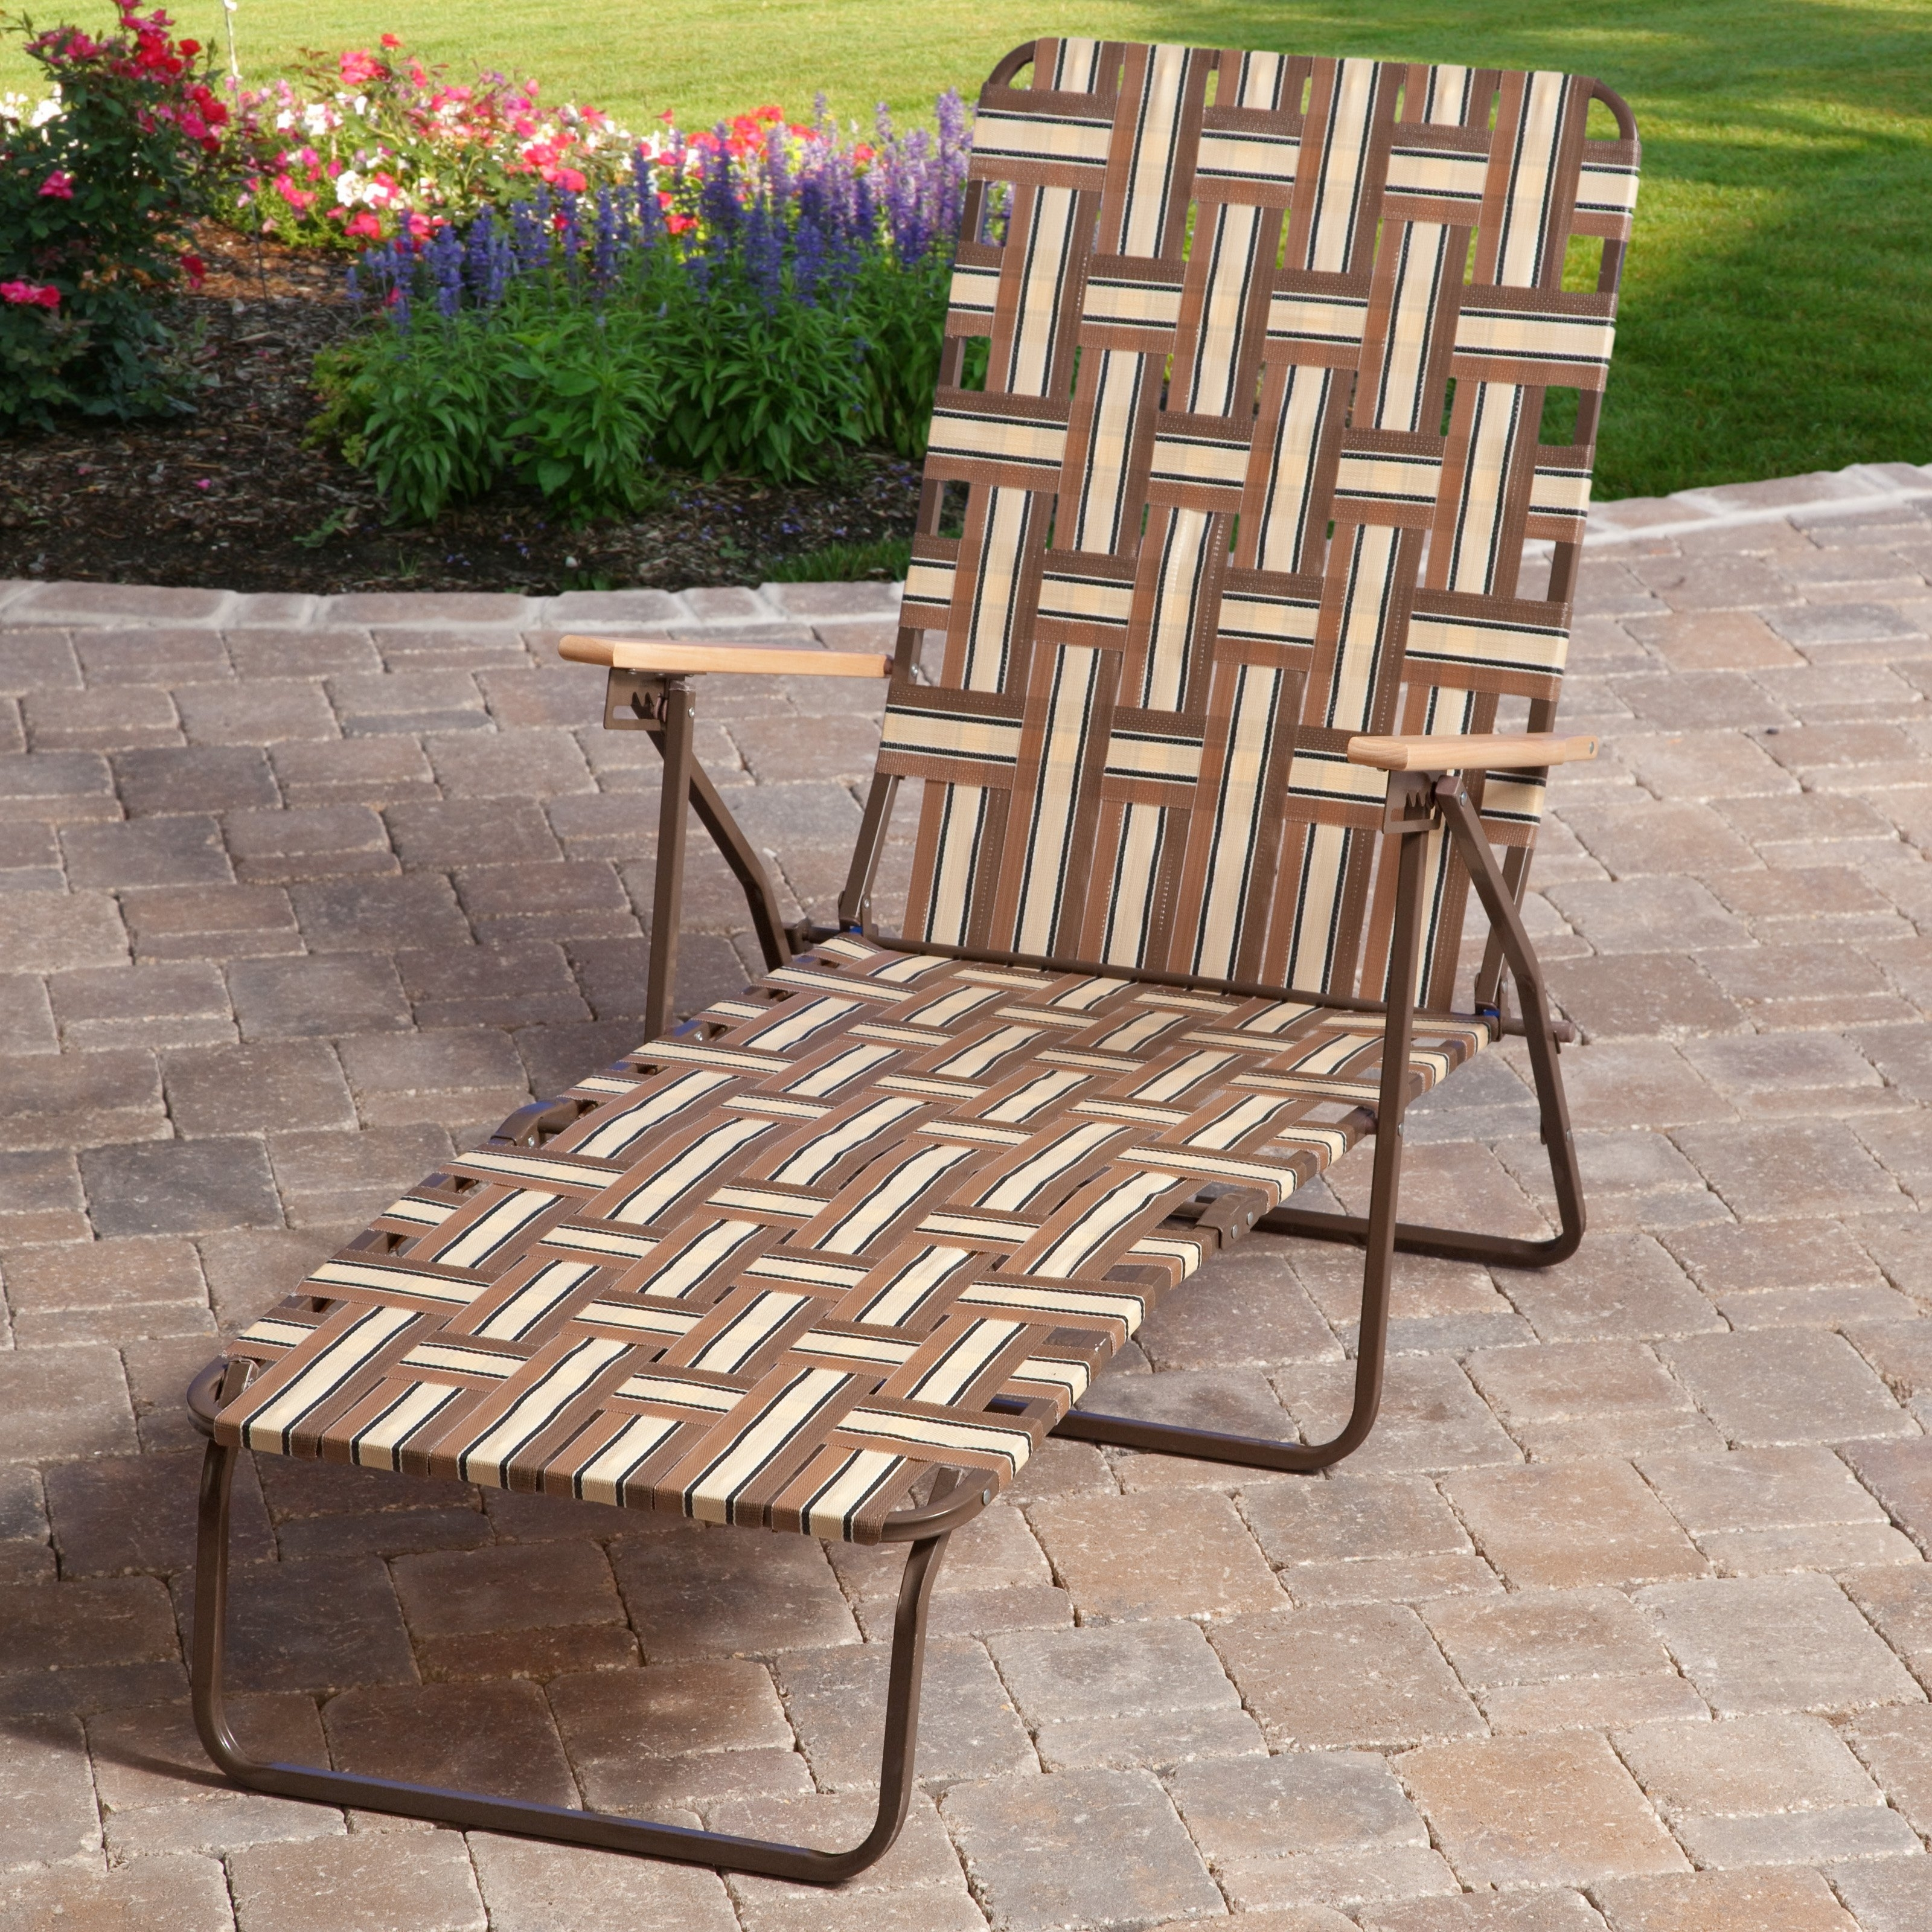 Famous Rio Deluxe Folding Web Chaise Lounge – Walmart Inside Chaise Lounge Chairs At Walmart (View 8 of 15)